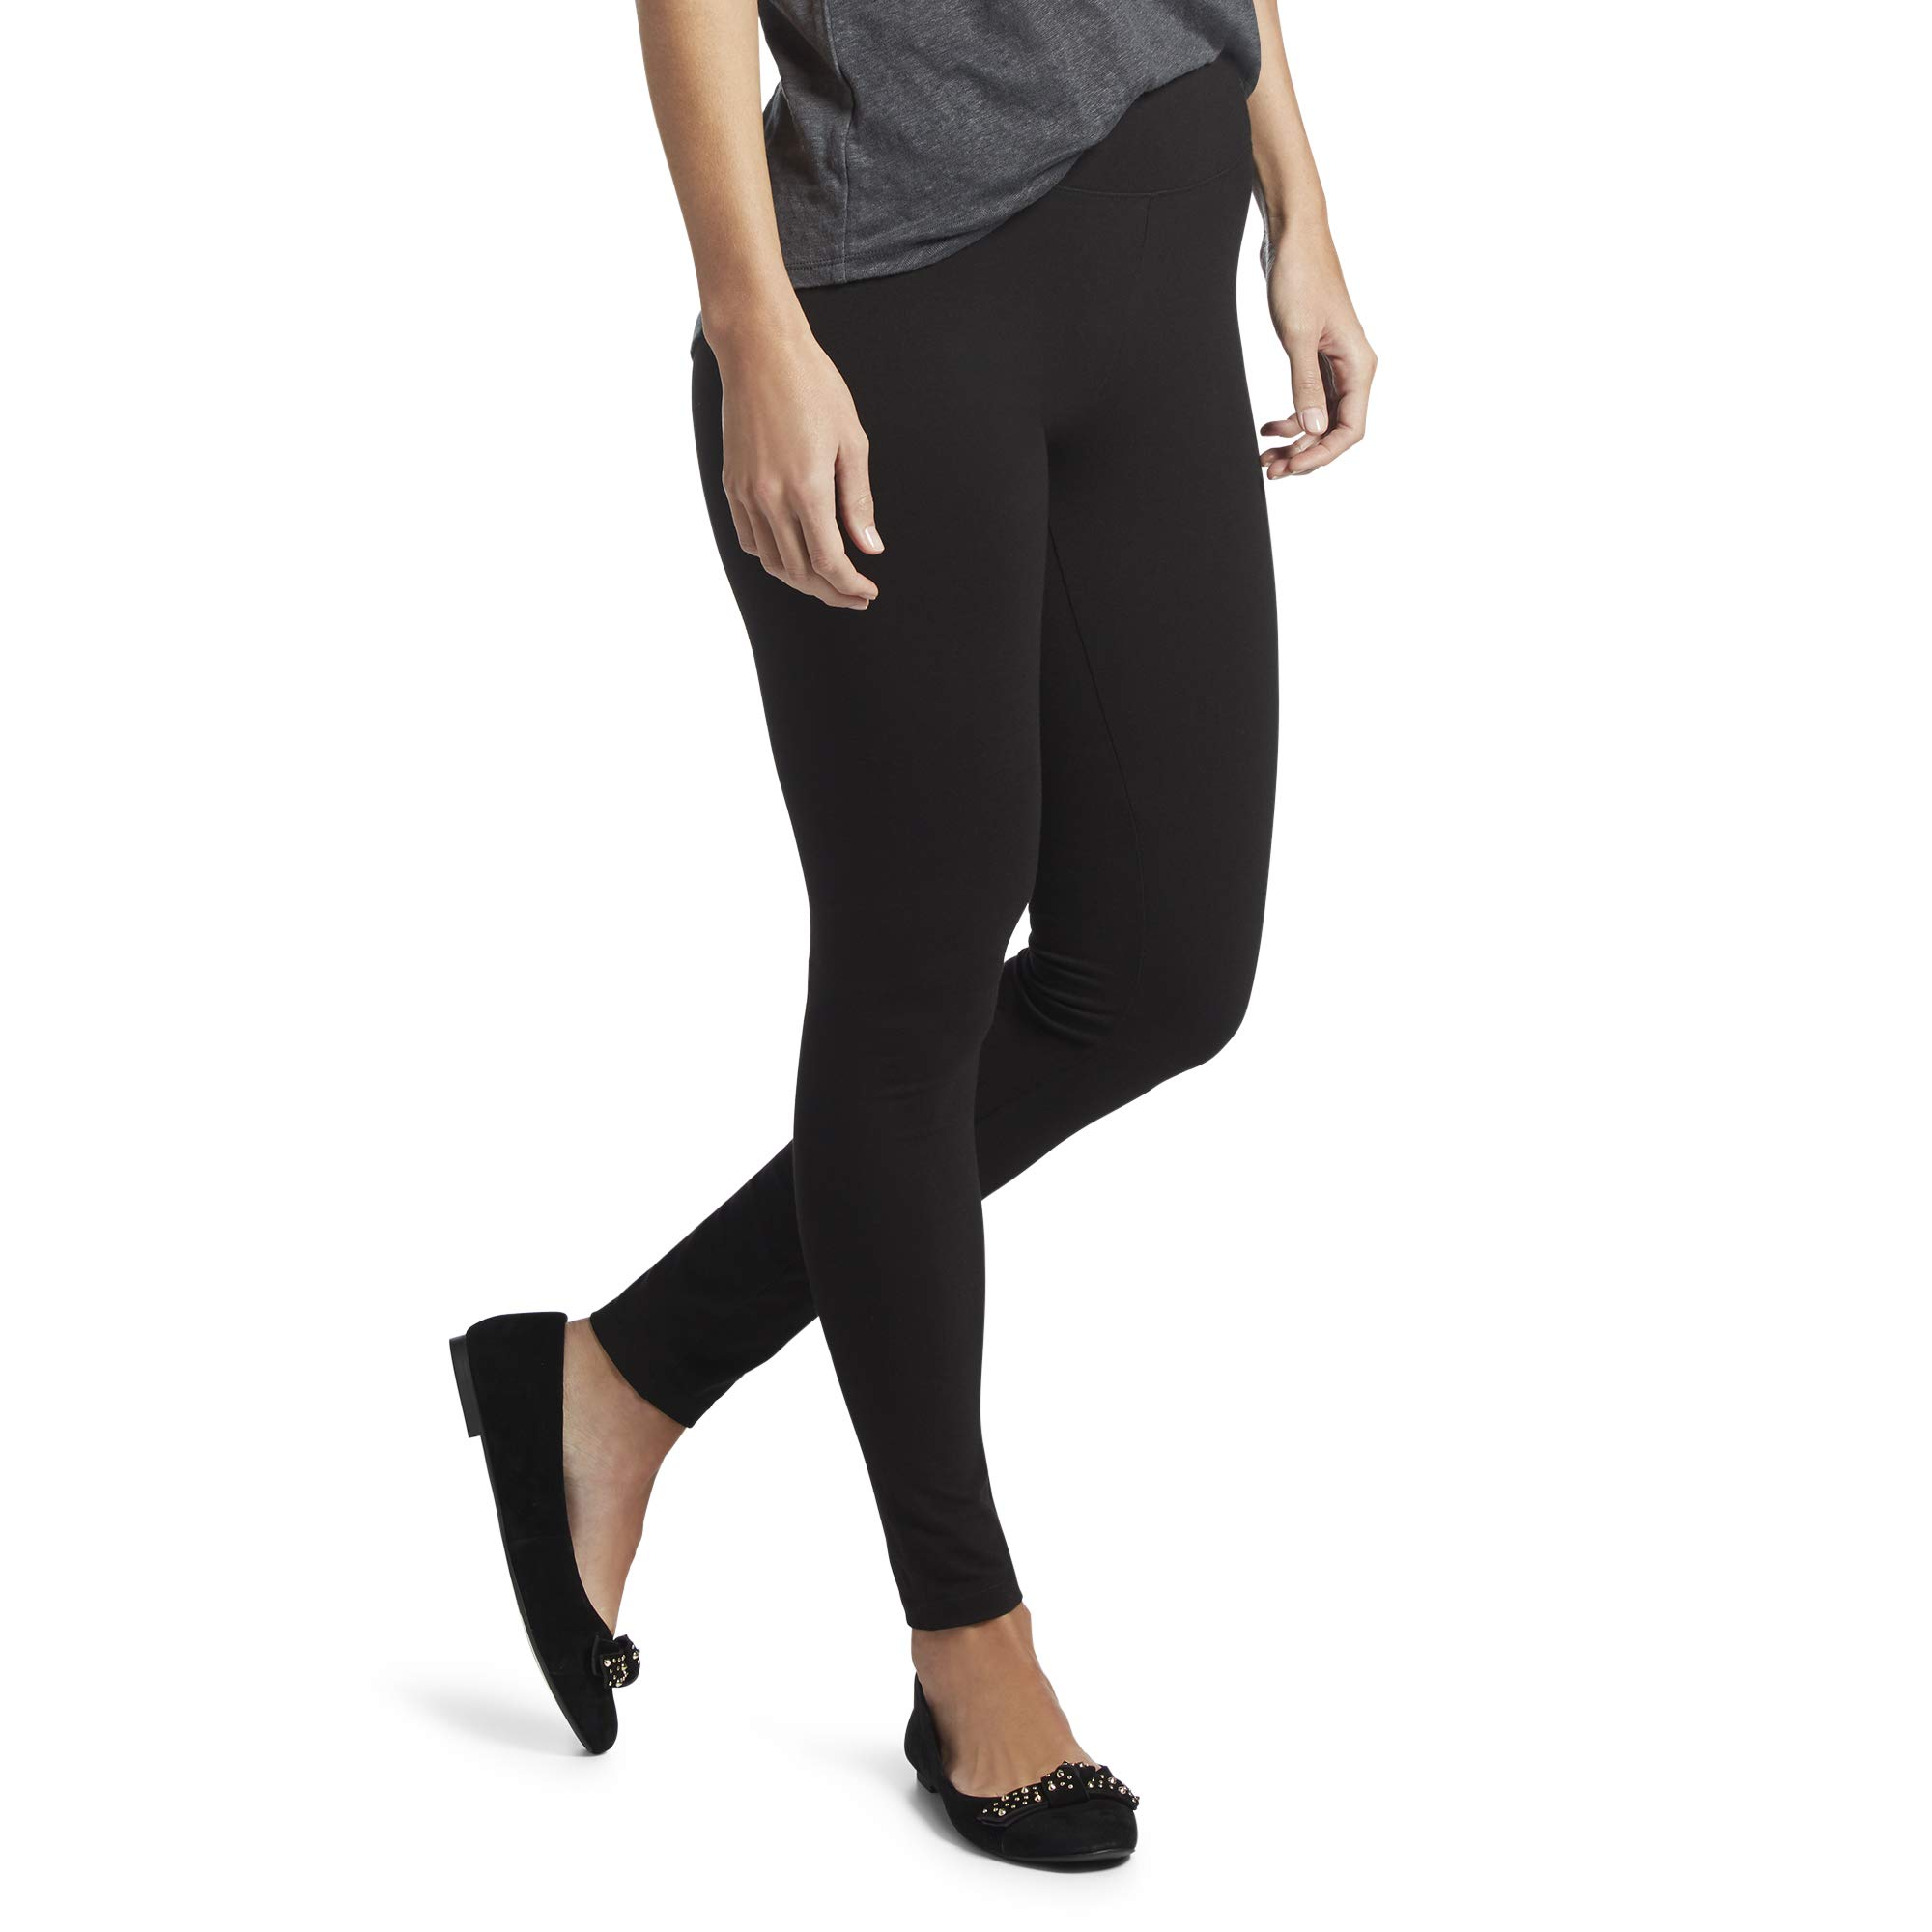 Hue Women's Ultra Legging with Wide Waistband - Medium - Black